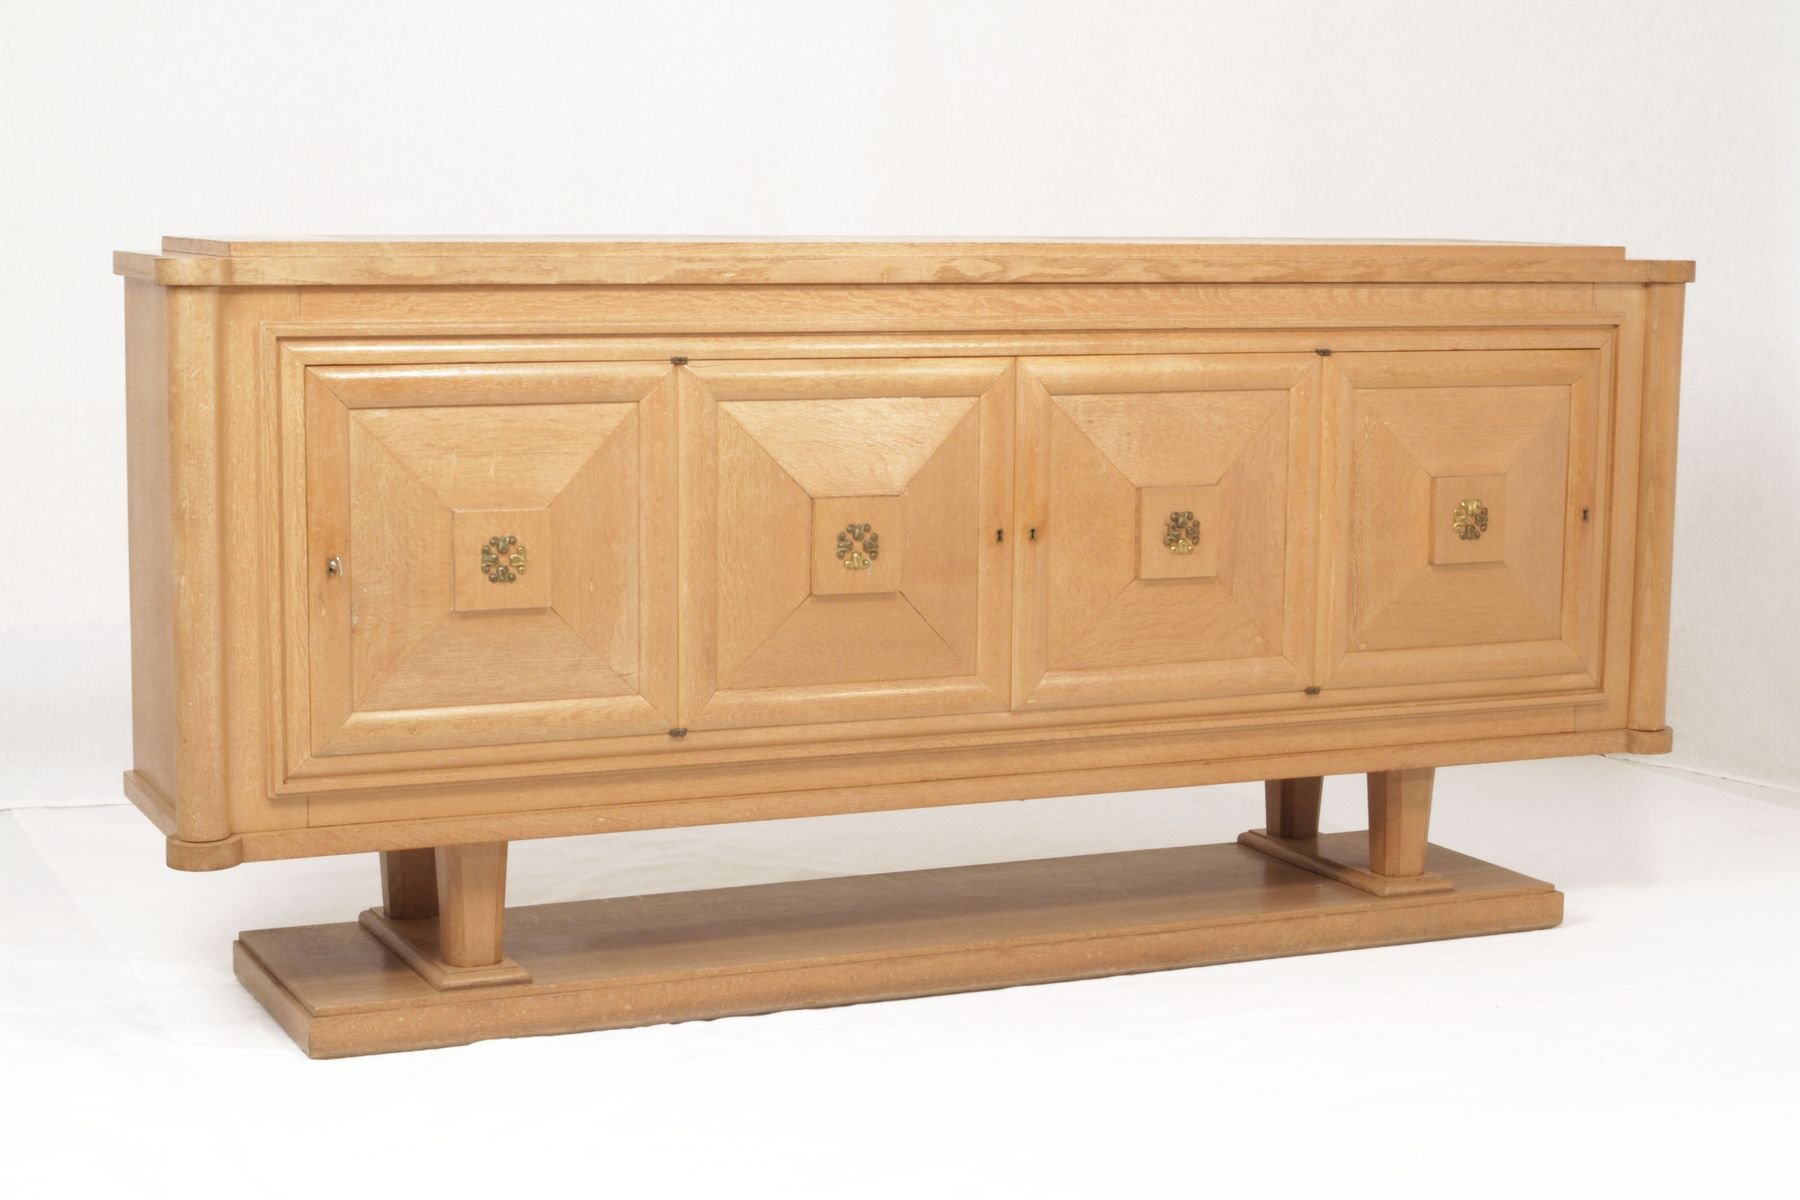 Art deco oak sideboard by gaston poisson for sale at pamono for Meuble art deco